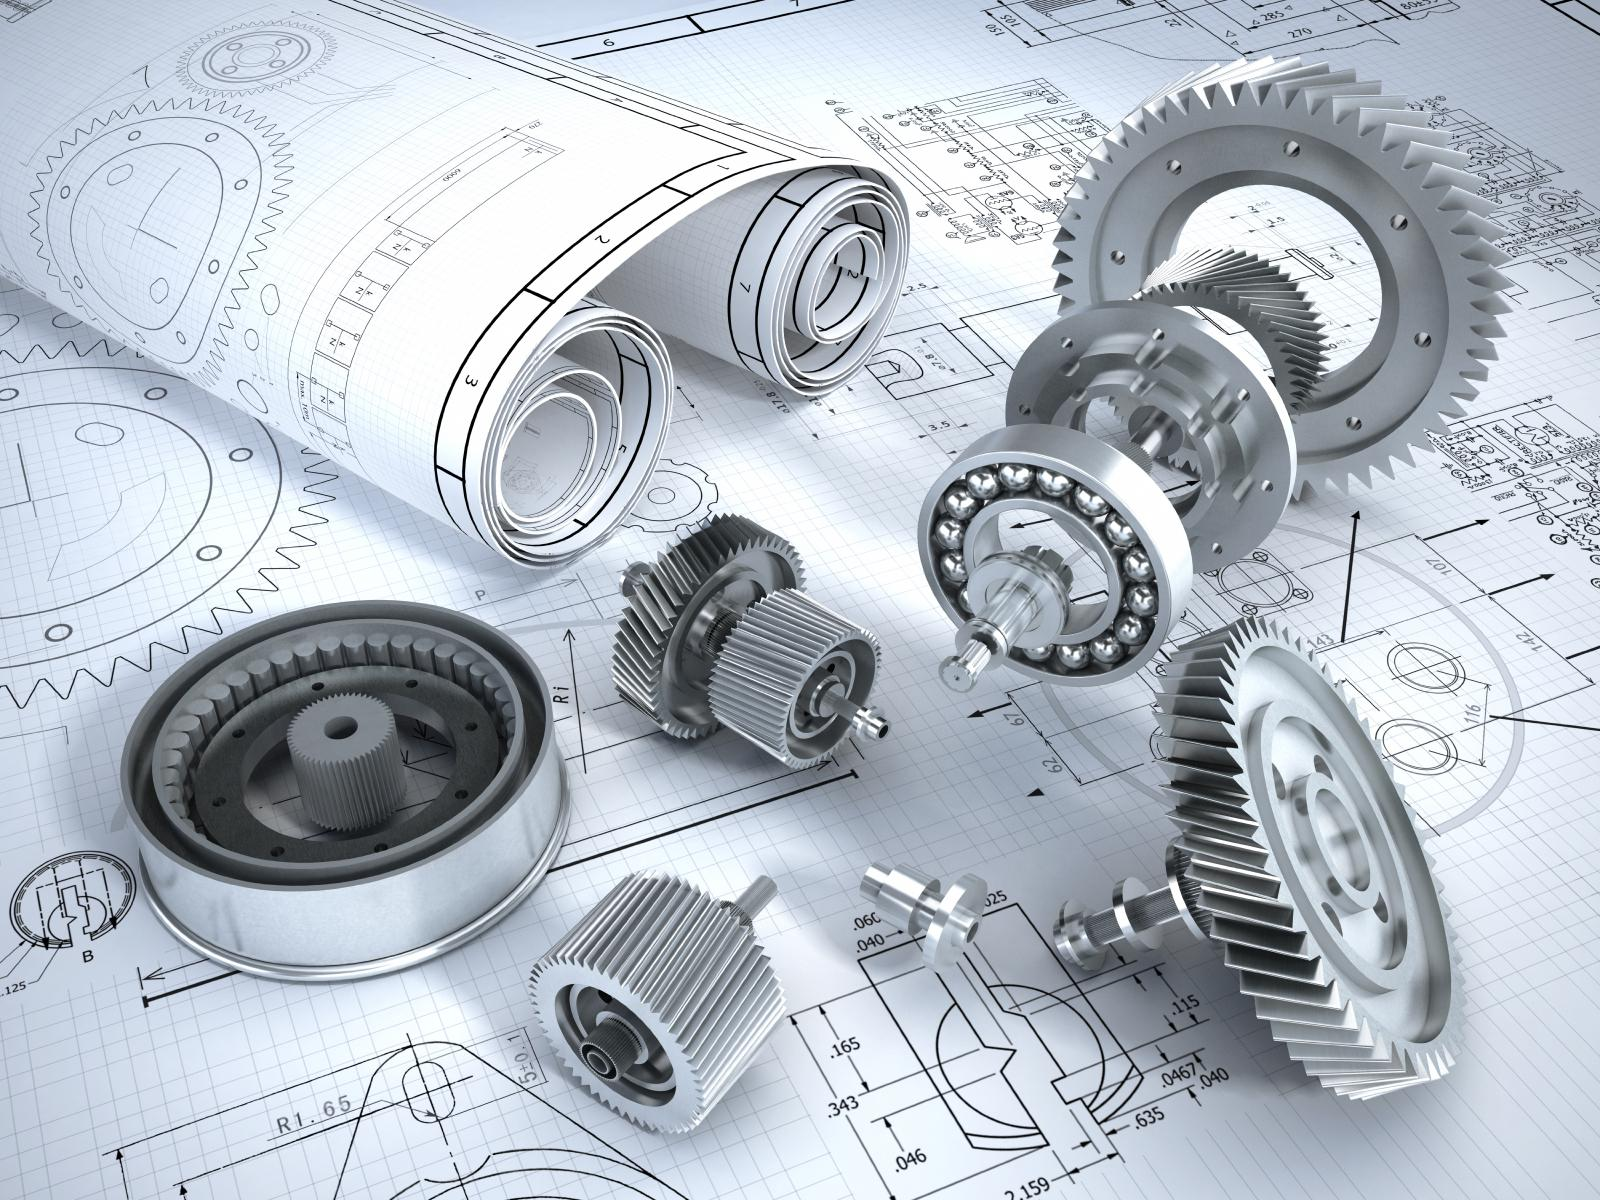 A Mechanical Engineering Science Abstract Background